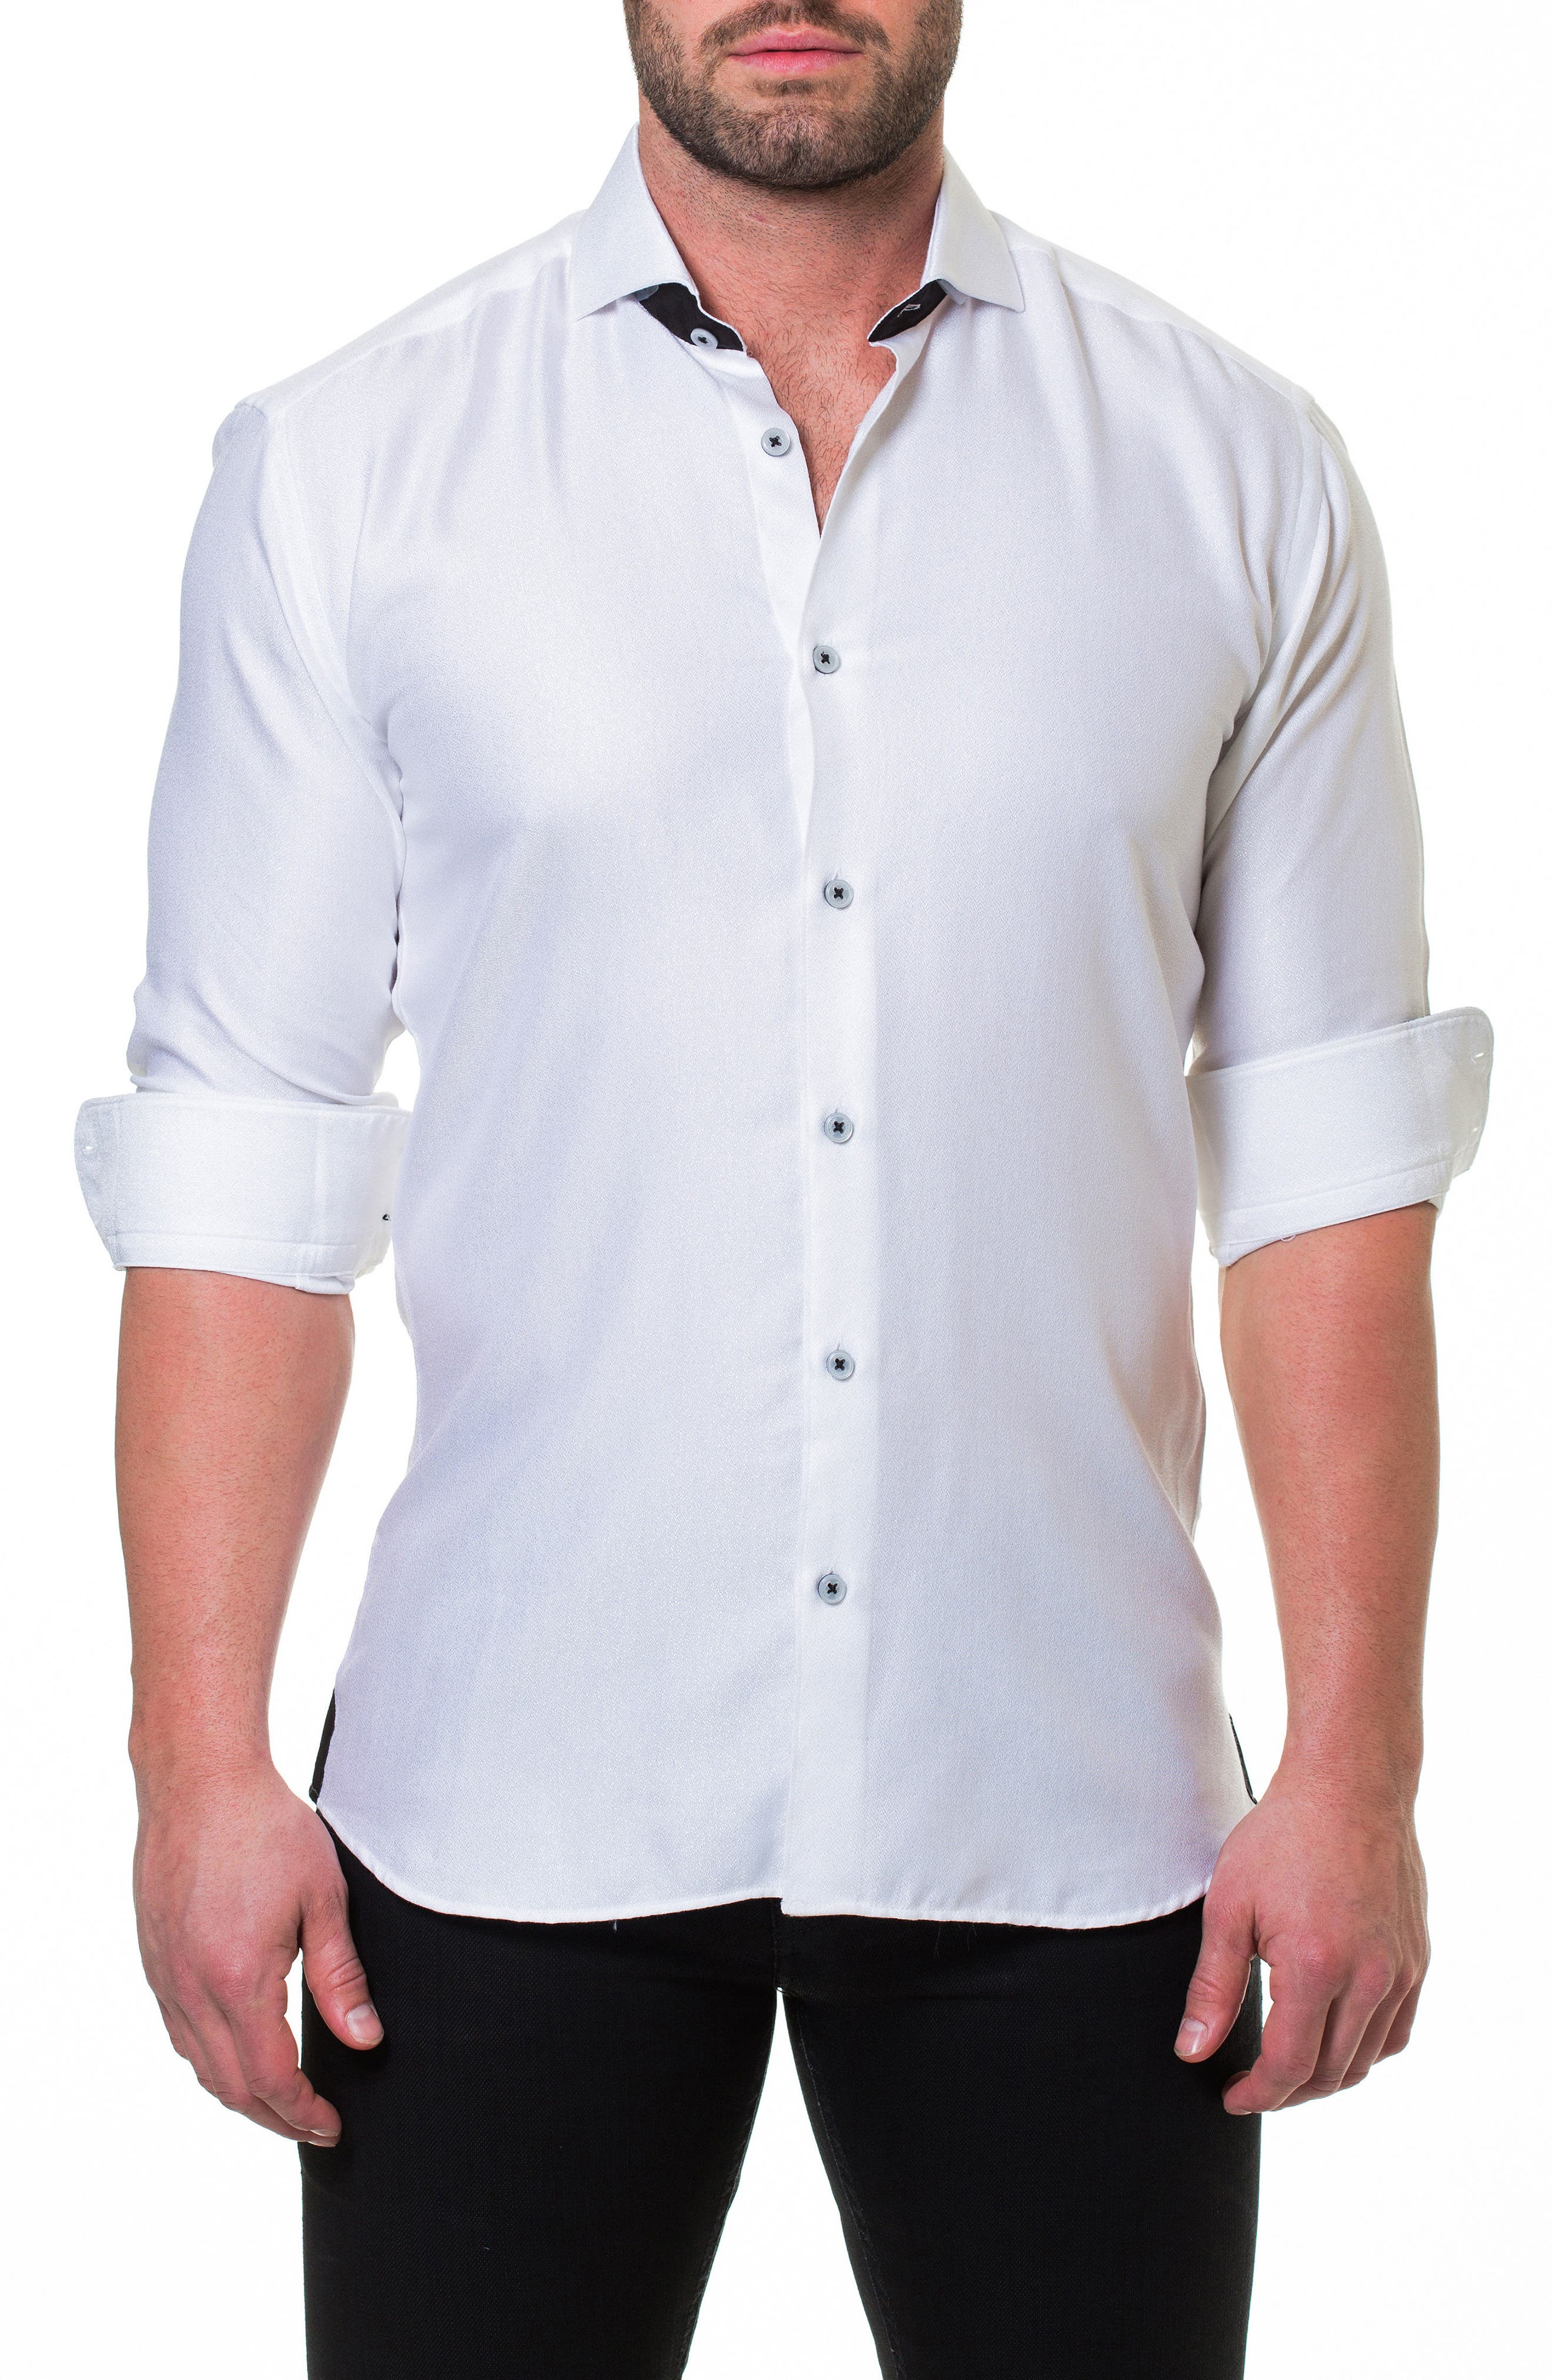 Wall Street Serenity White Slim Fit Sport Shirt,                             Alternate thumbnail 3, color,                             White